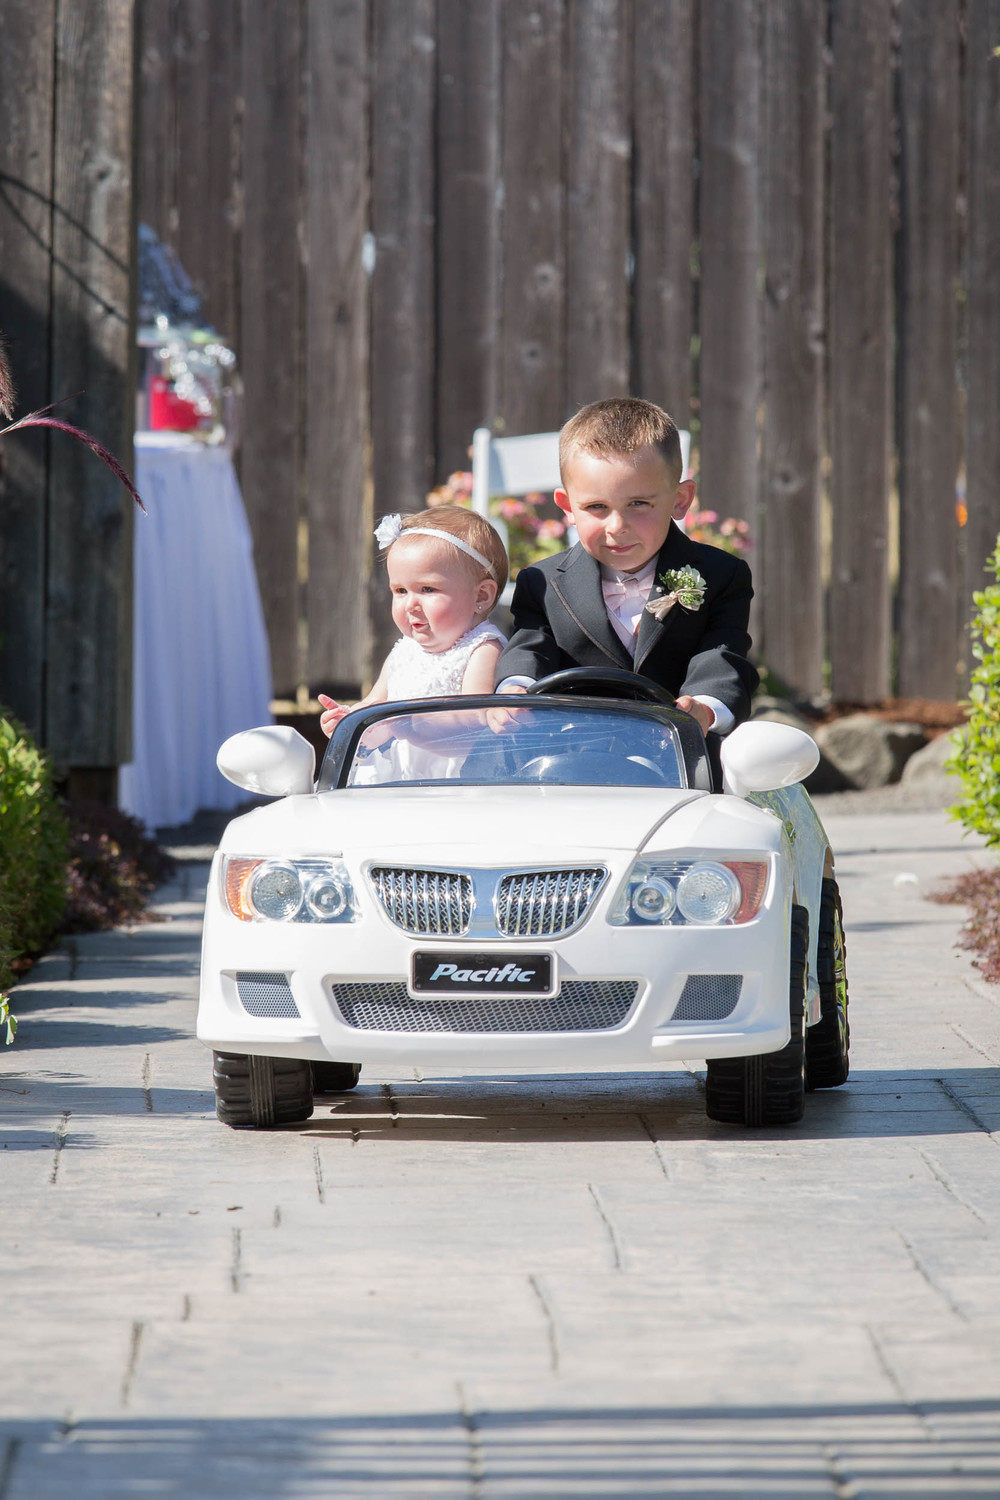 Ava and Wyatt are the cutest flower girl and ring bearer I have ever seen. The car that they drove down the isle was perfect. When they got to the front everyone started clapping. So sweet.